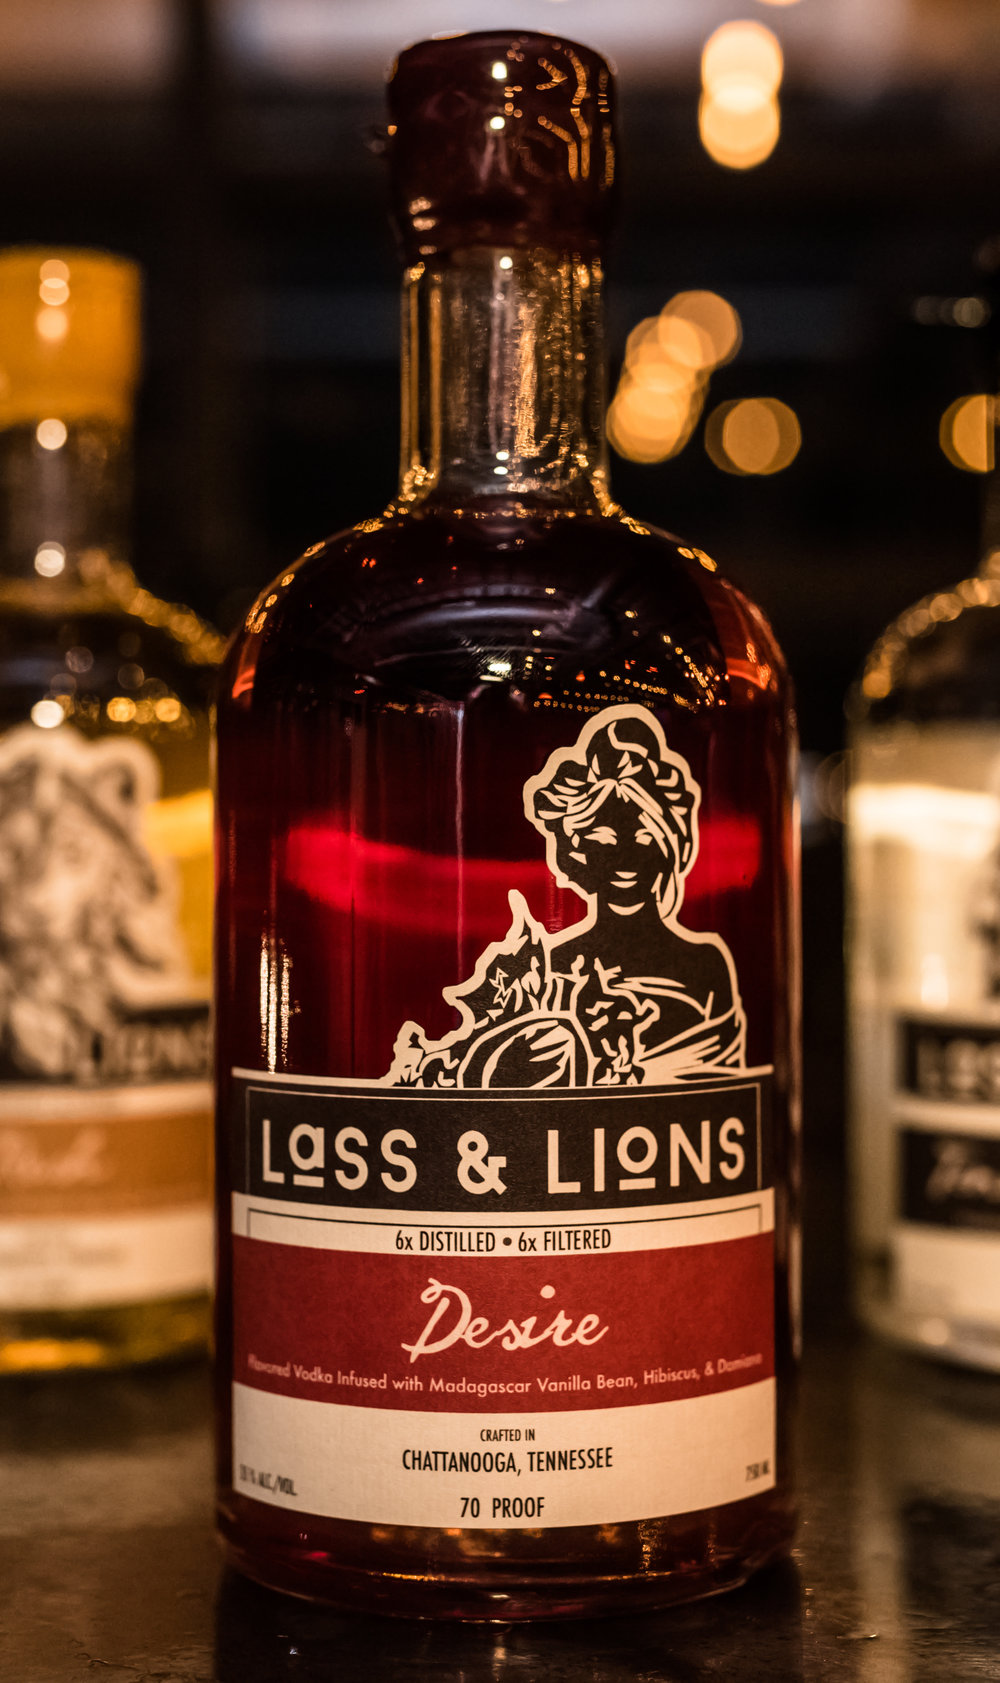 Lass_Lions Bottle Forward Series (4 of 4).jpg